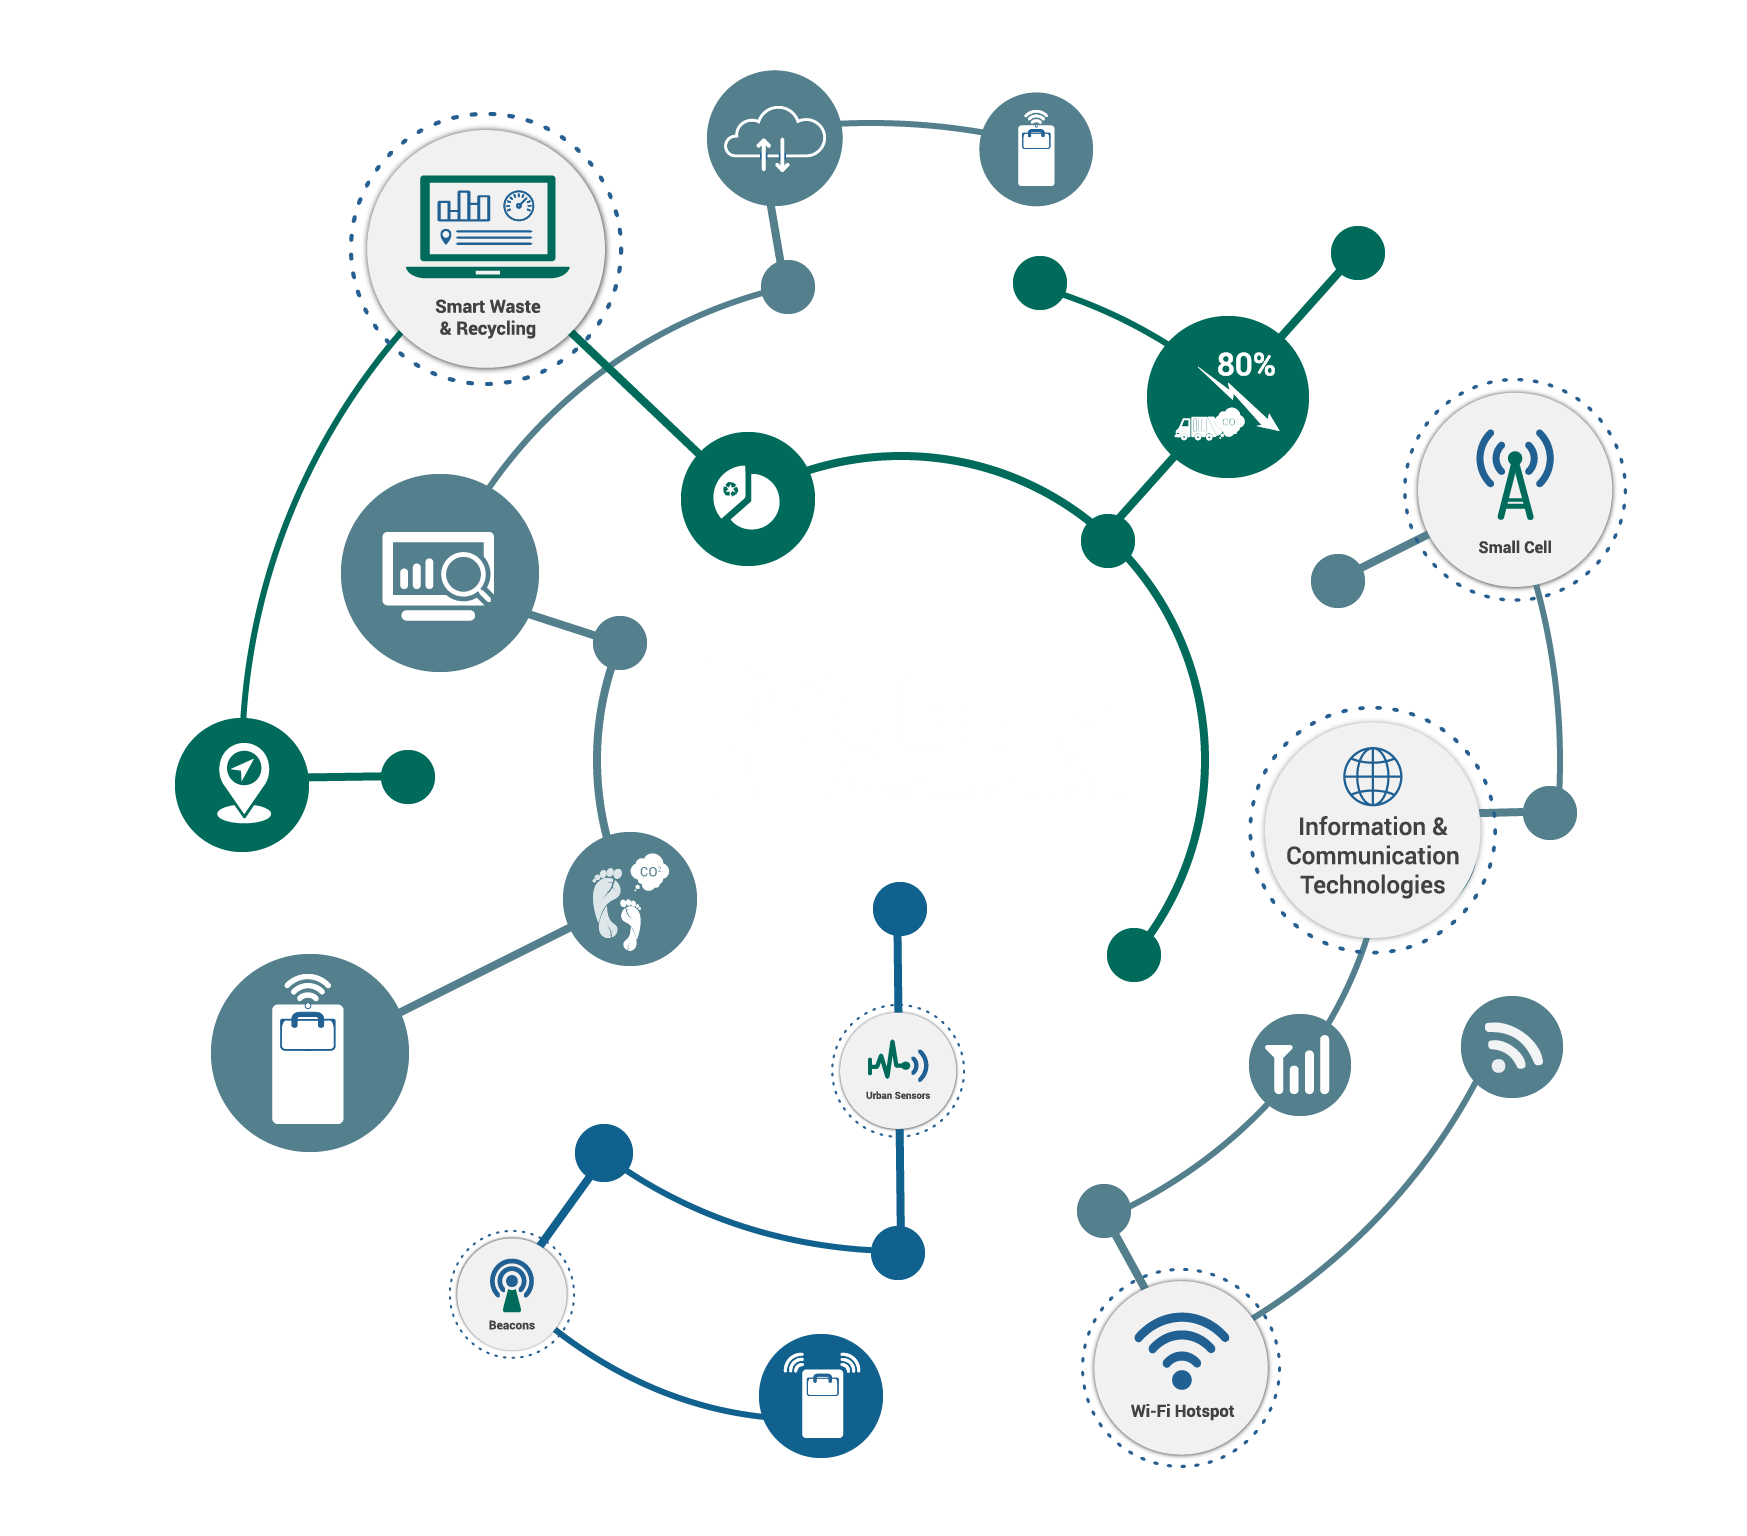 Smart Floor Waste Bigbelly Smart Solutions For Cities World Leader In Smart Waste